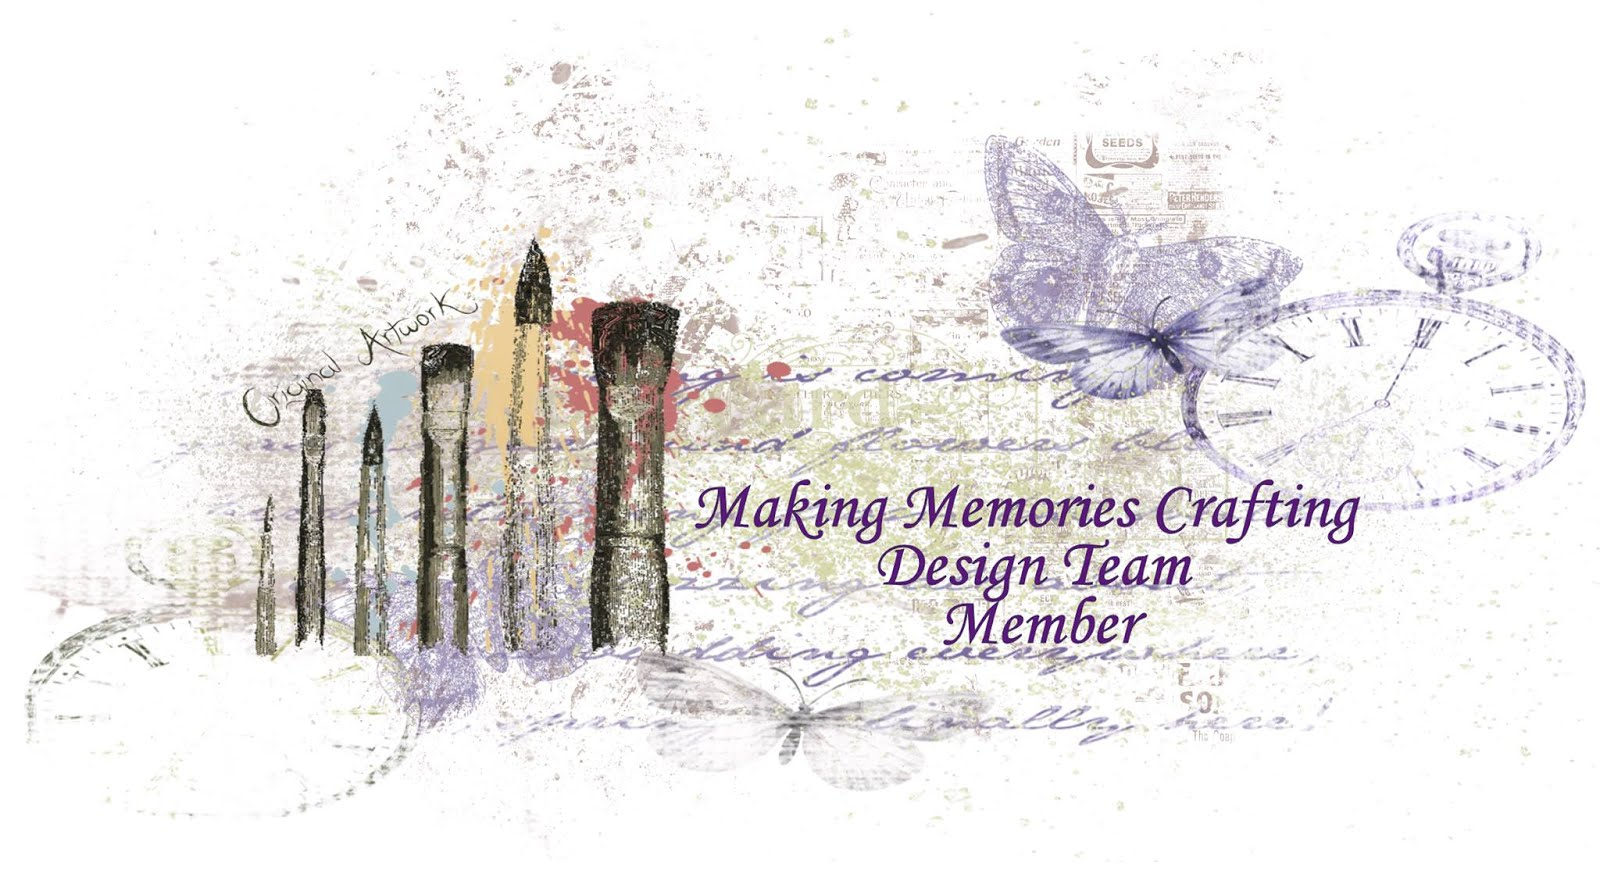 Diseño para MAKING MEMORIES CRAFTING